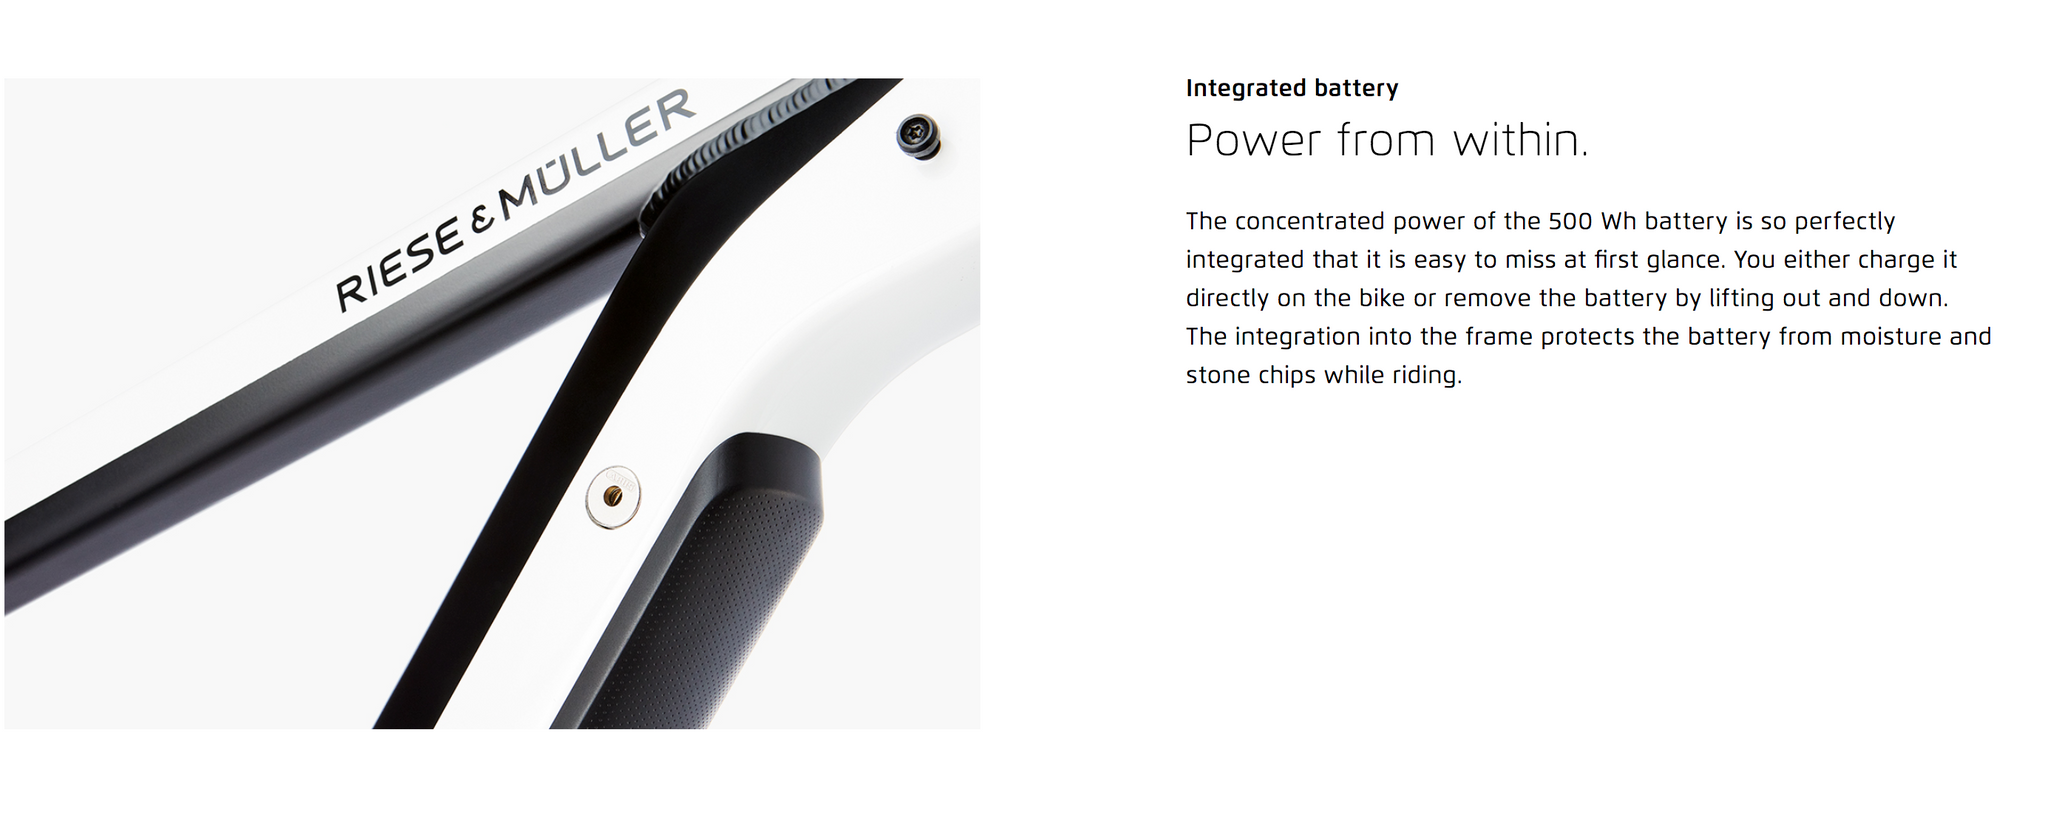 The concentrated power of the 500 Wh battery is so perfectly integrated that it is easy to miss at first glance. You either charge it directly on the bike or remove the battery by lifting out and down. The integration into the frame protects the battery from moisture and stone chips while riding.